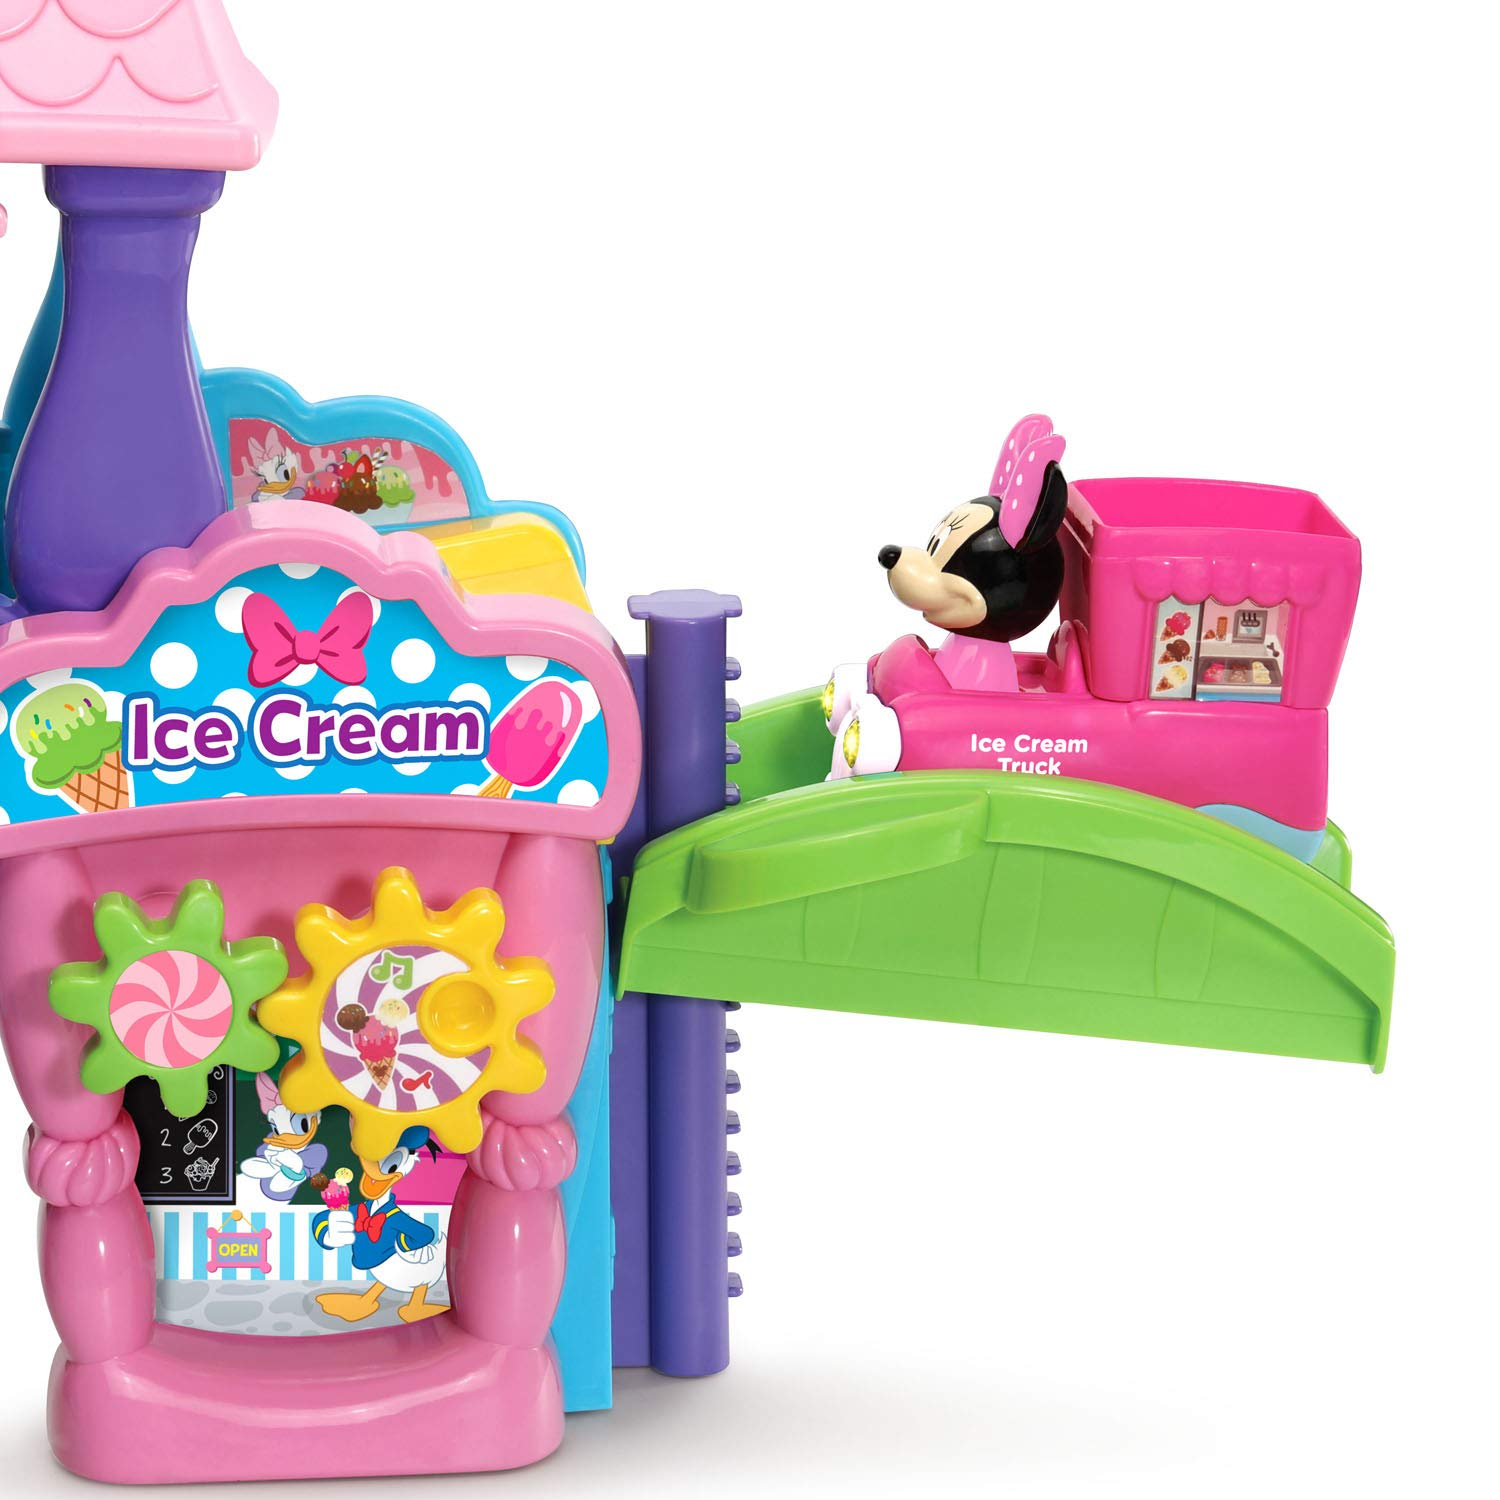 VTech Go! Go! Smart Wheels Minnie Mouse Ice Cream Parlor by VTech (Image #3)